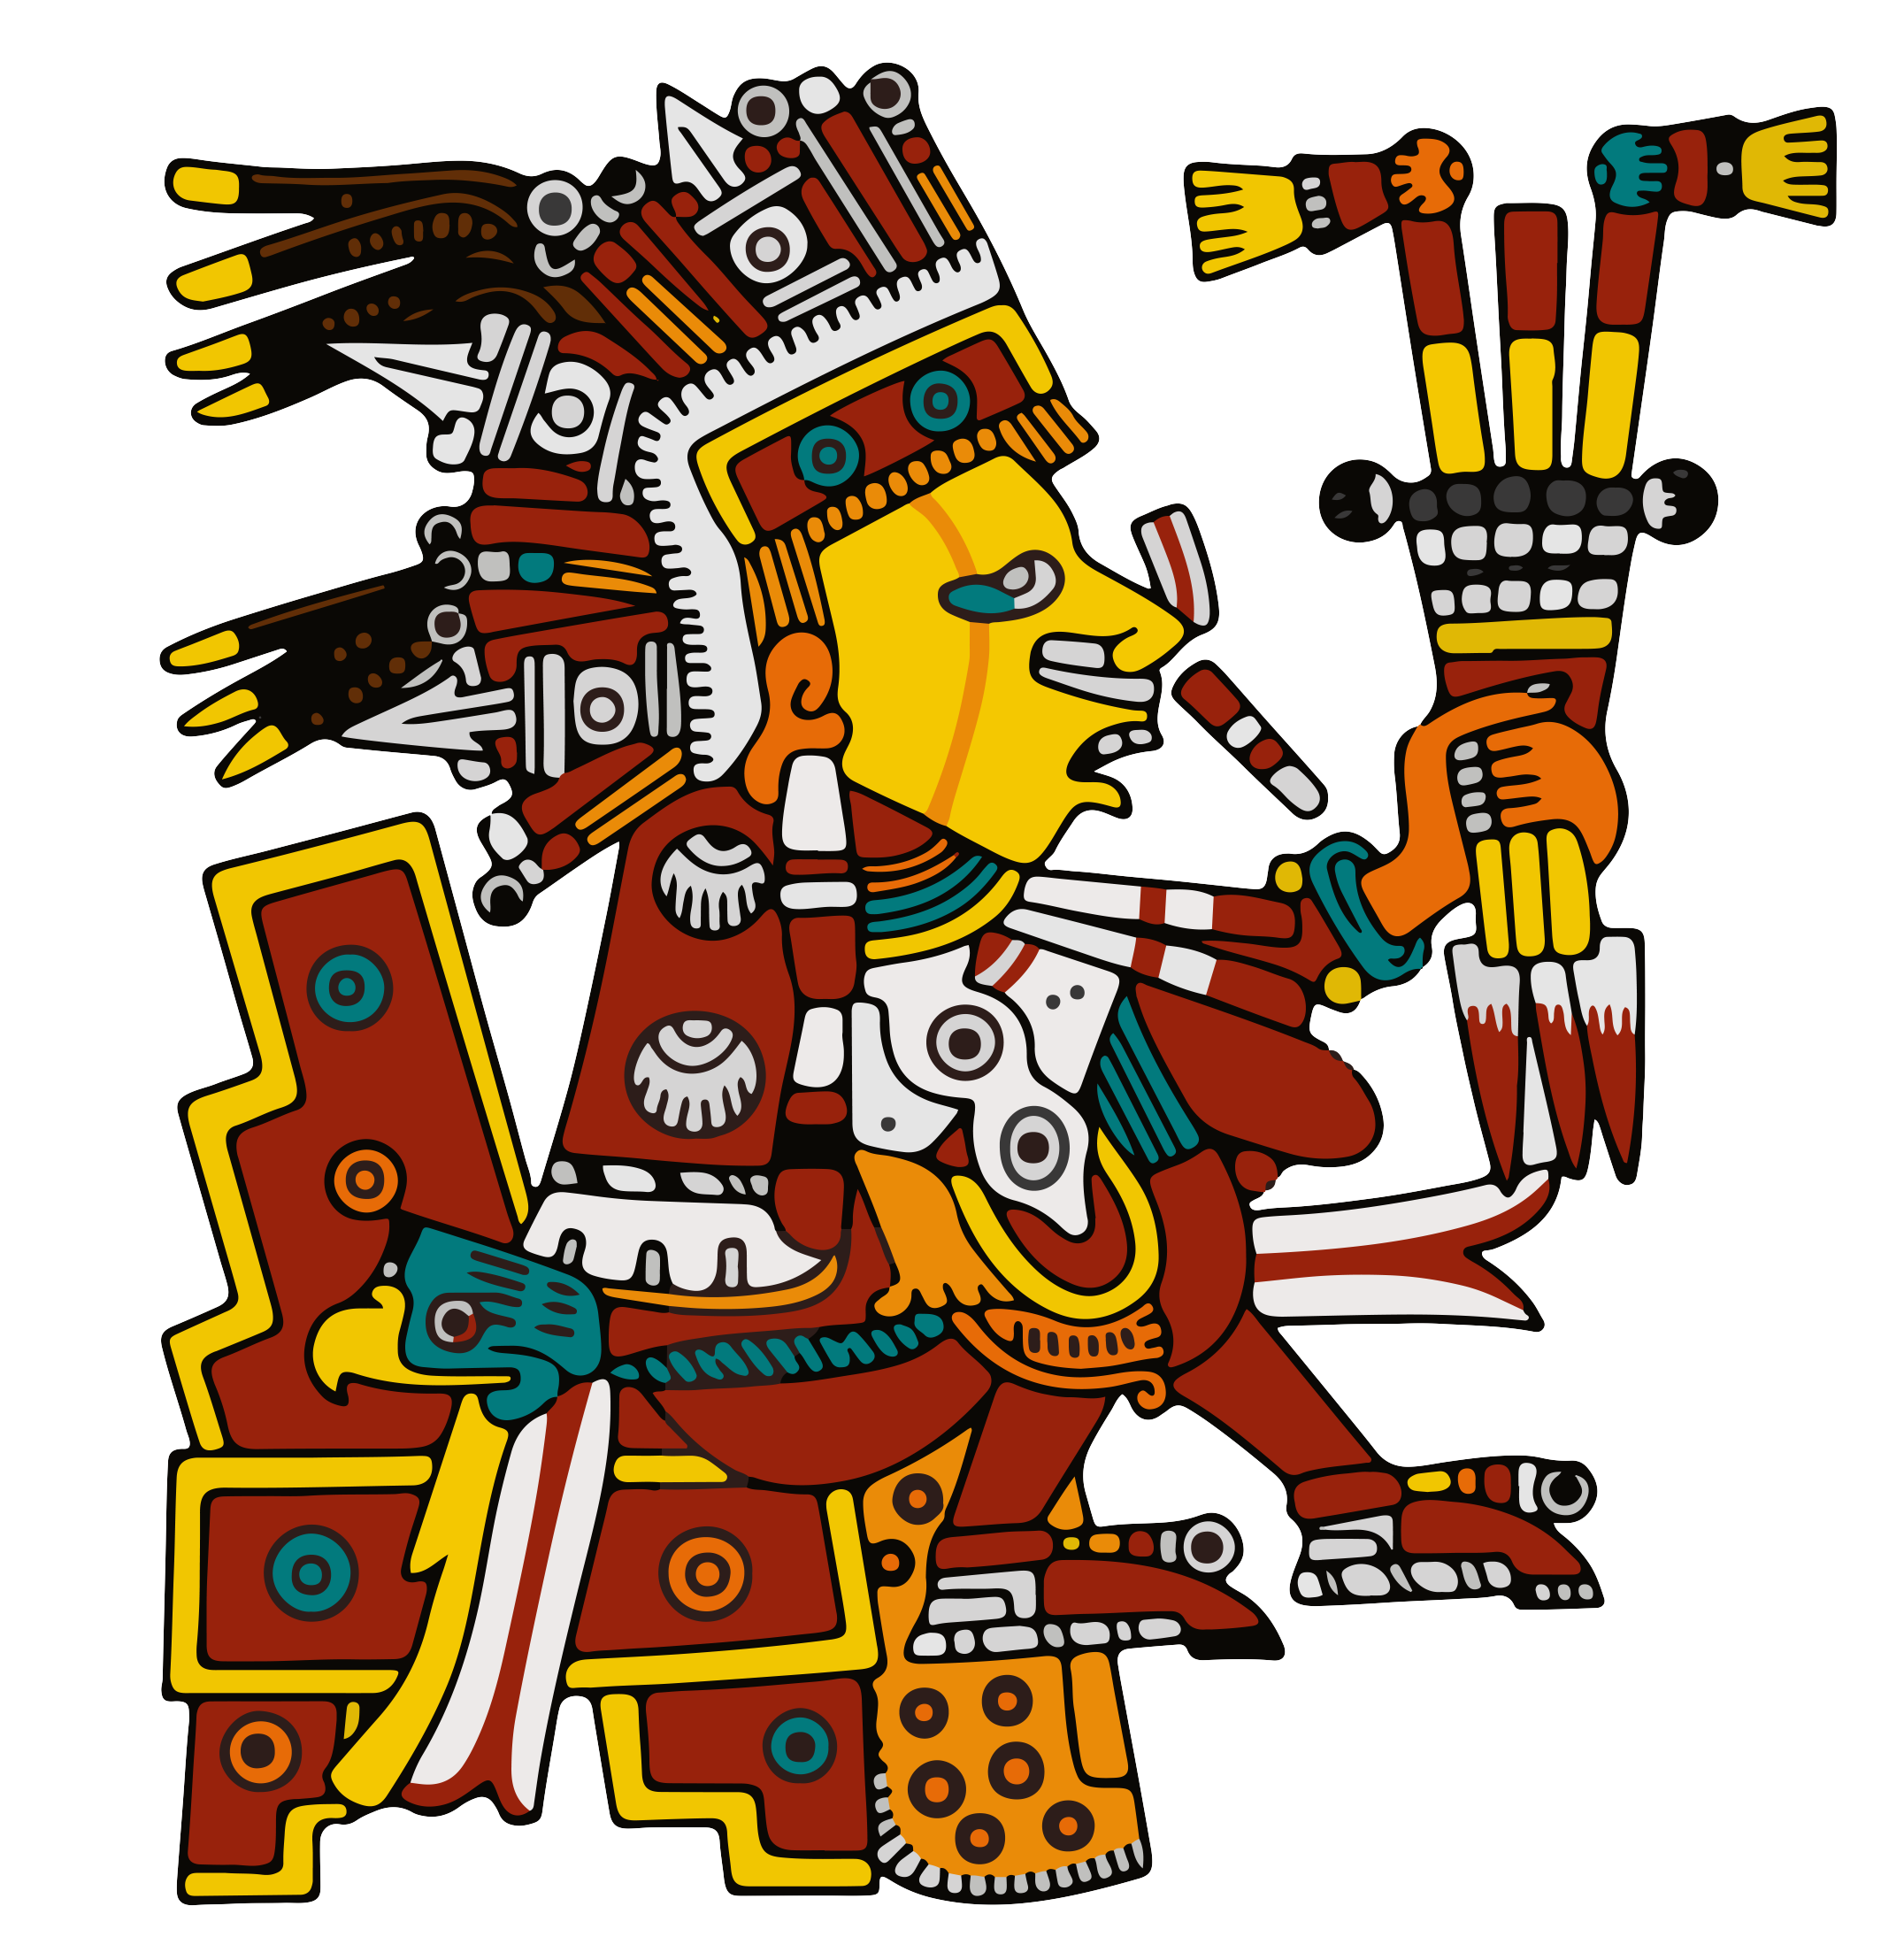 What is YOALI - YOALI is a description for the night, and is based on the Solar deity, Piltzintecuhtli; the Son of day and Night, son of the first man and woman on Earth, and guardian and protector of children.Youth Outreach and Learning Institute (YOALI) is a youth-oriented program whose goal is to minimize youth violence through outreach and cultural trainings based on ancestral native traditions. Youth outreach is conducted through an intergenerational approach to help embrace and learn traditional virtues and values, continuing the way of live the ancestors taught.We believe that ethical & culturally-based community activism was, and is, the foundation of all our efforts.Cultural trainings encompass a realistic and intimate approach, including native traditional which individuals can utilize in their daily life to promote positive values and virtue.